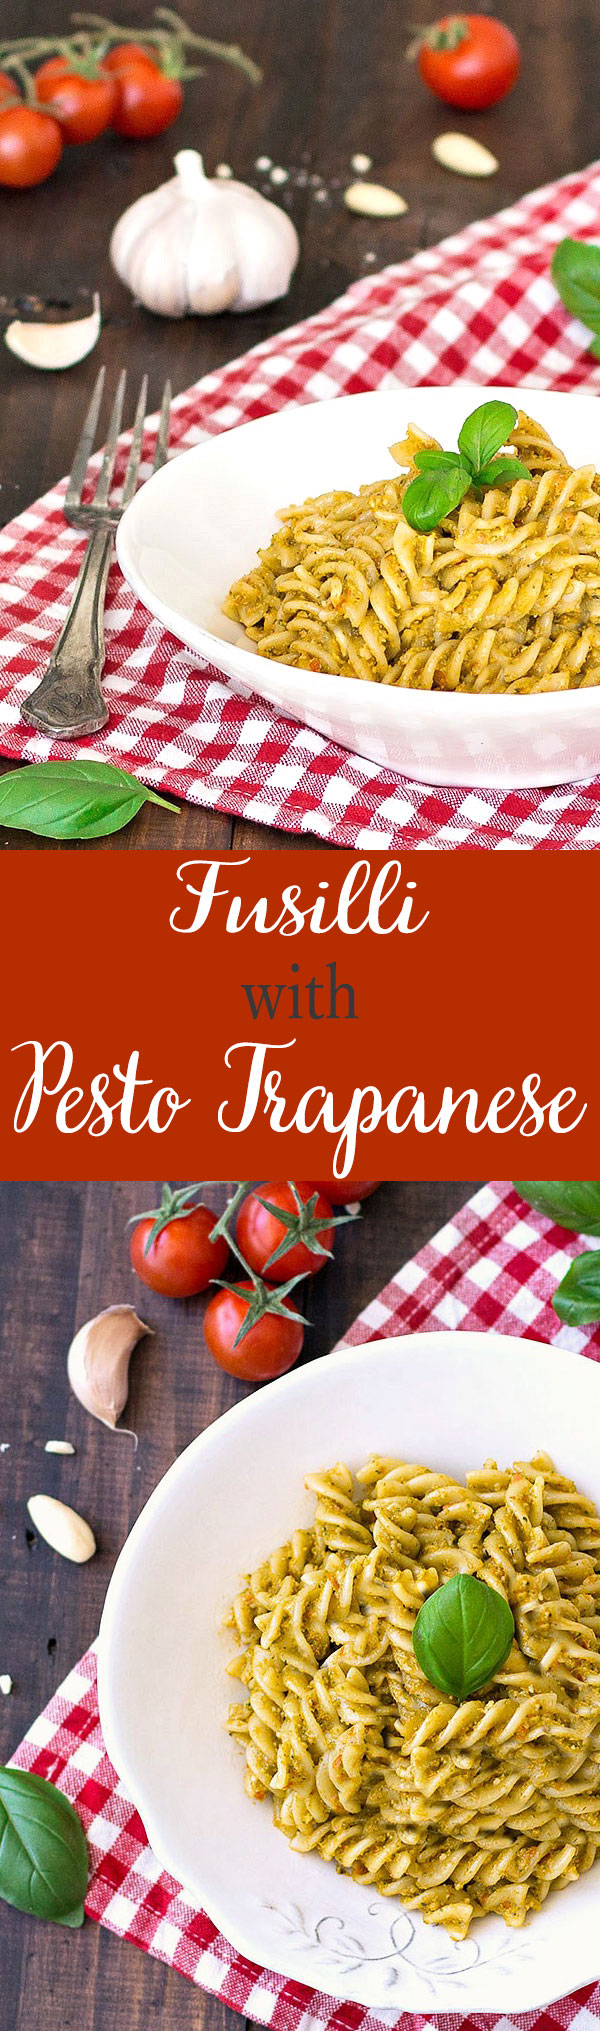 Fusilli with pesto trapanese is a simple yet satisfying pasta tossed in a pesto typical from Sicily. It's super quick to prepare!